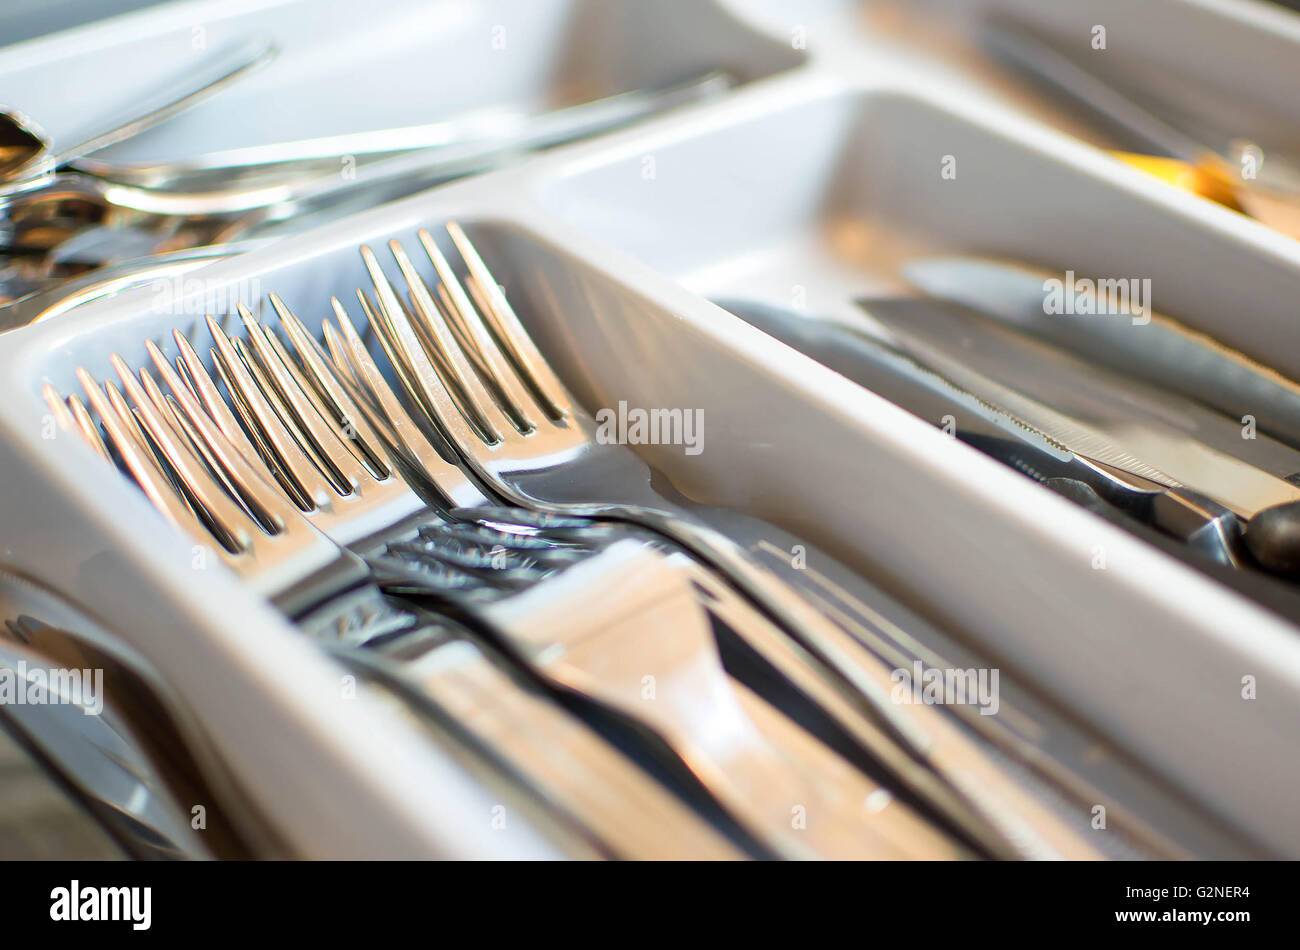 forks closeup cutlery drawer - Stock Image